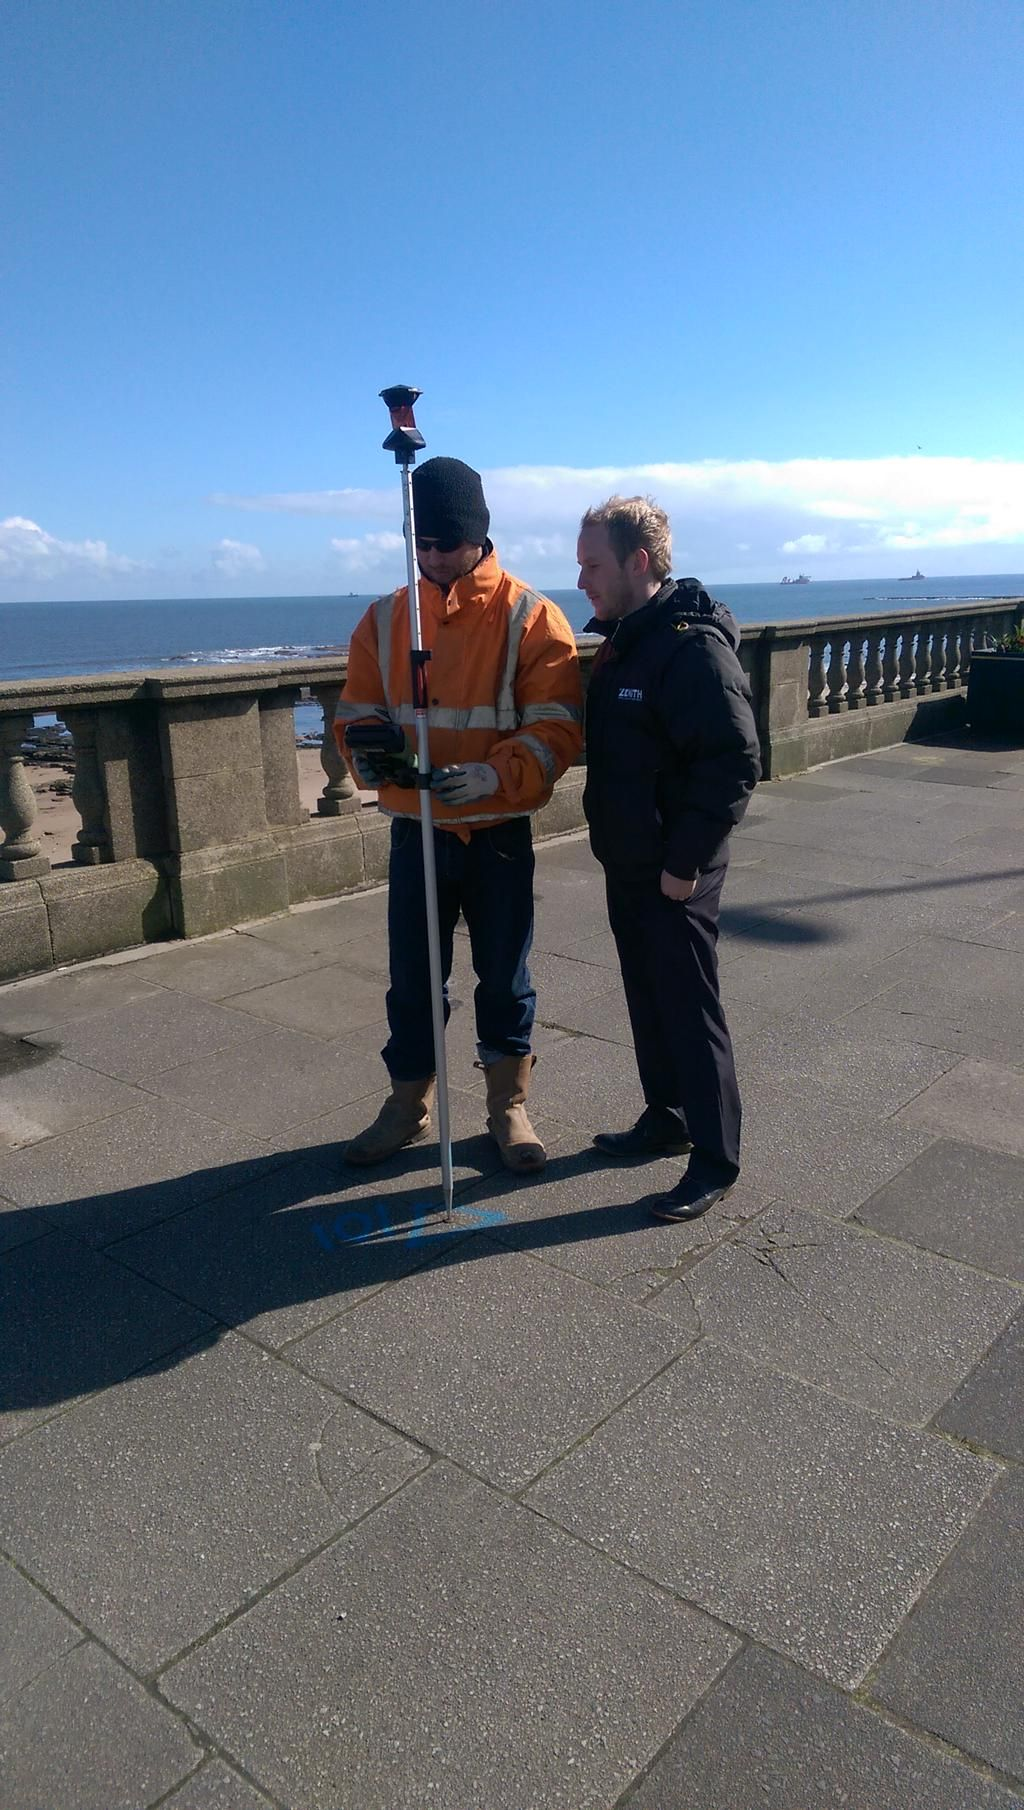 Surveying by the sea Leica Geosystems TS15 total station